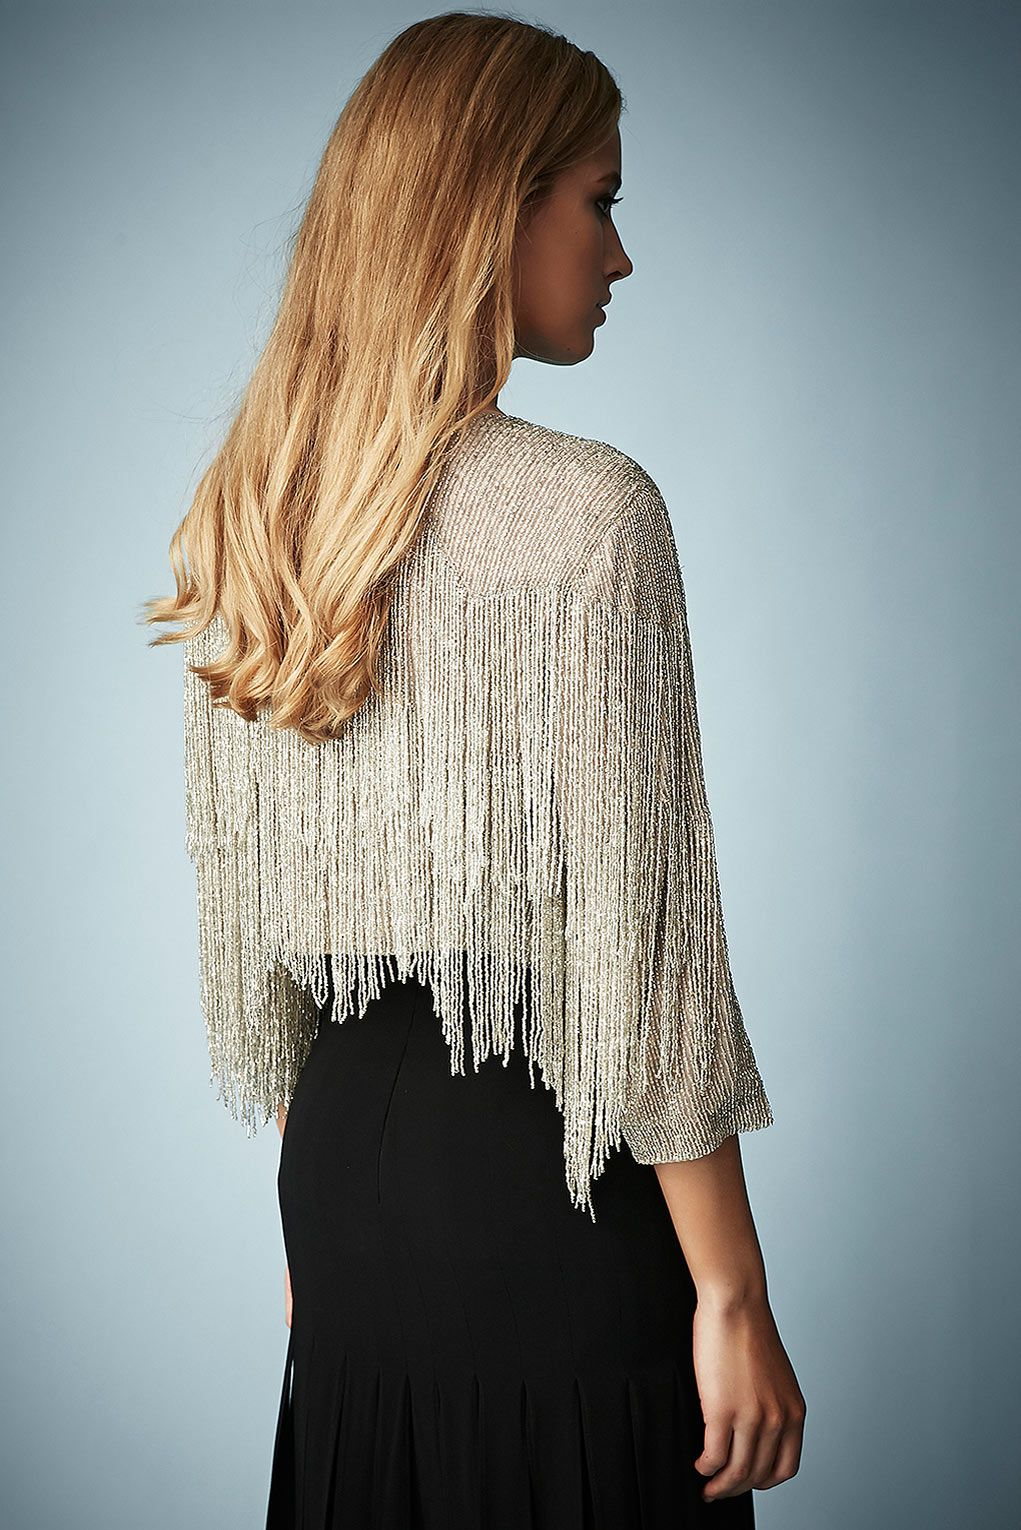 Beaded Fringe Jacket by Kate Moss for Topshop - Kate Moss for ...